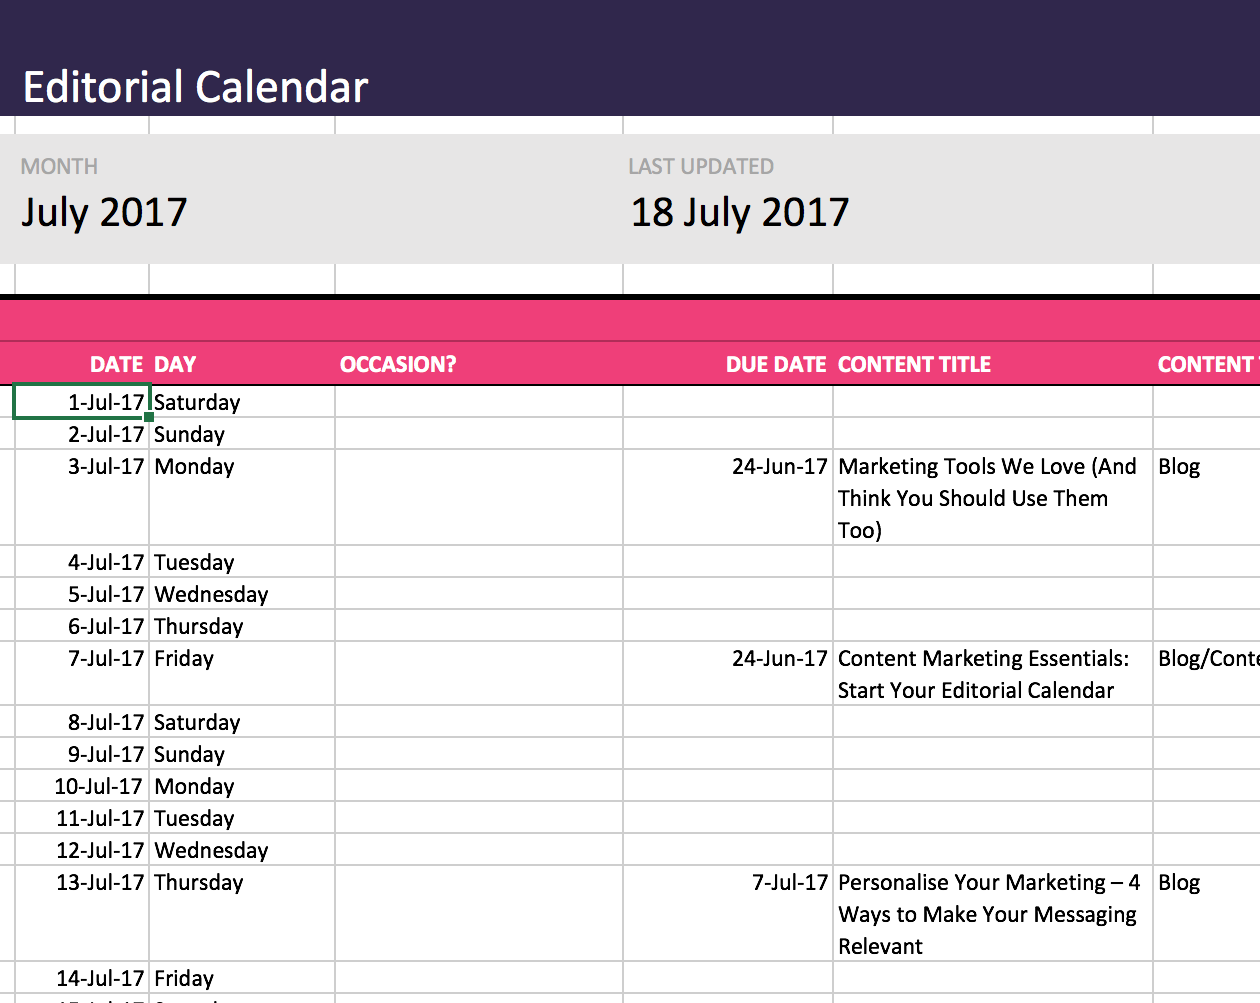 Content Marketing Essentials Start Your Editorial Calendar Free